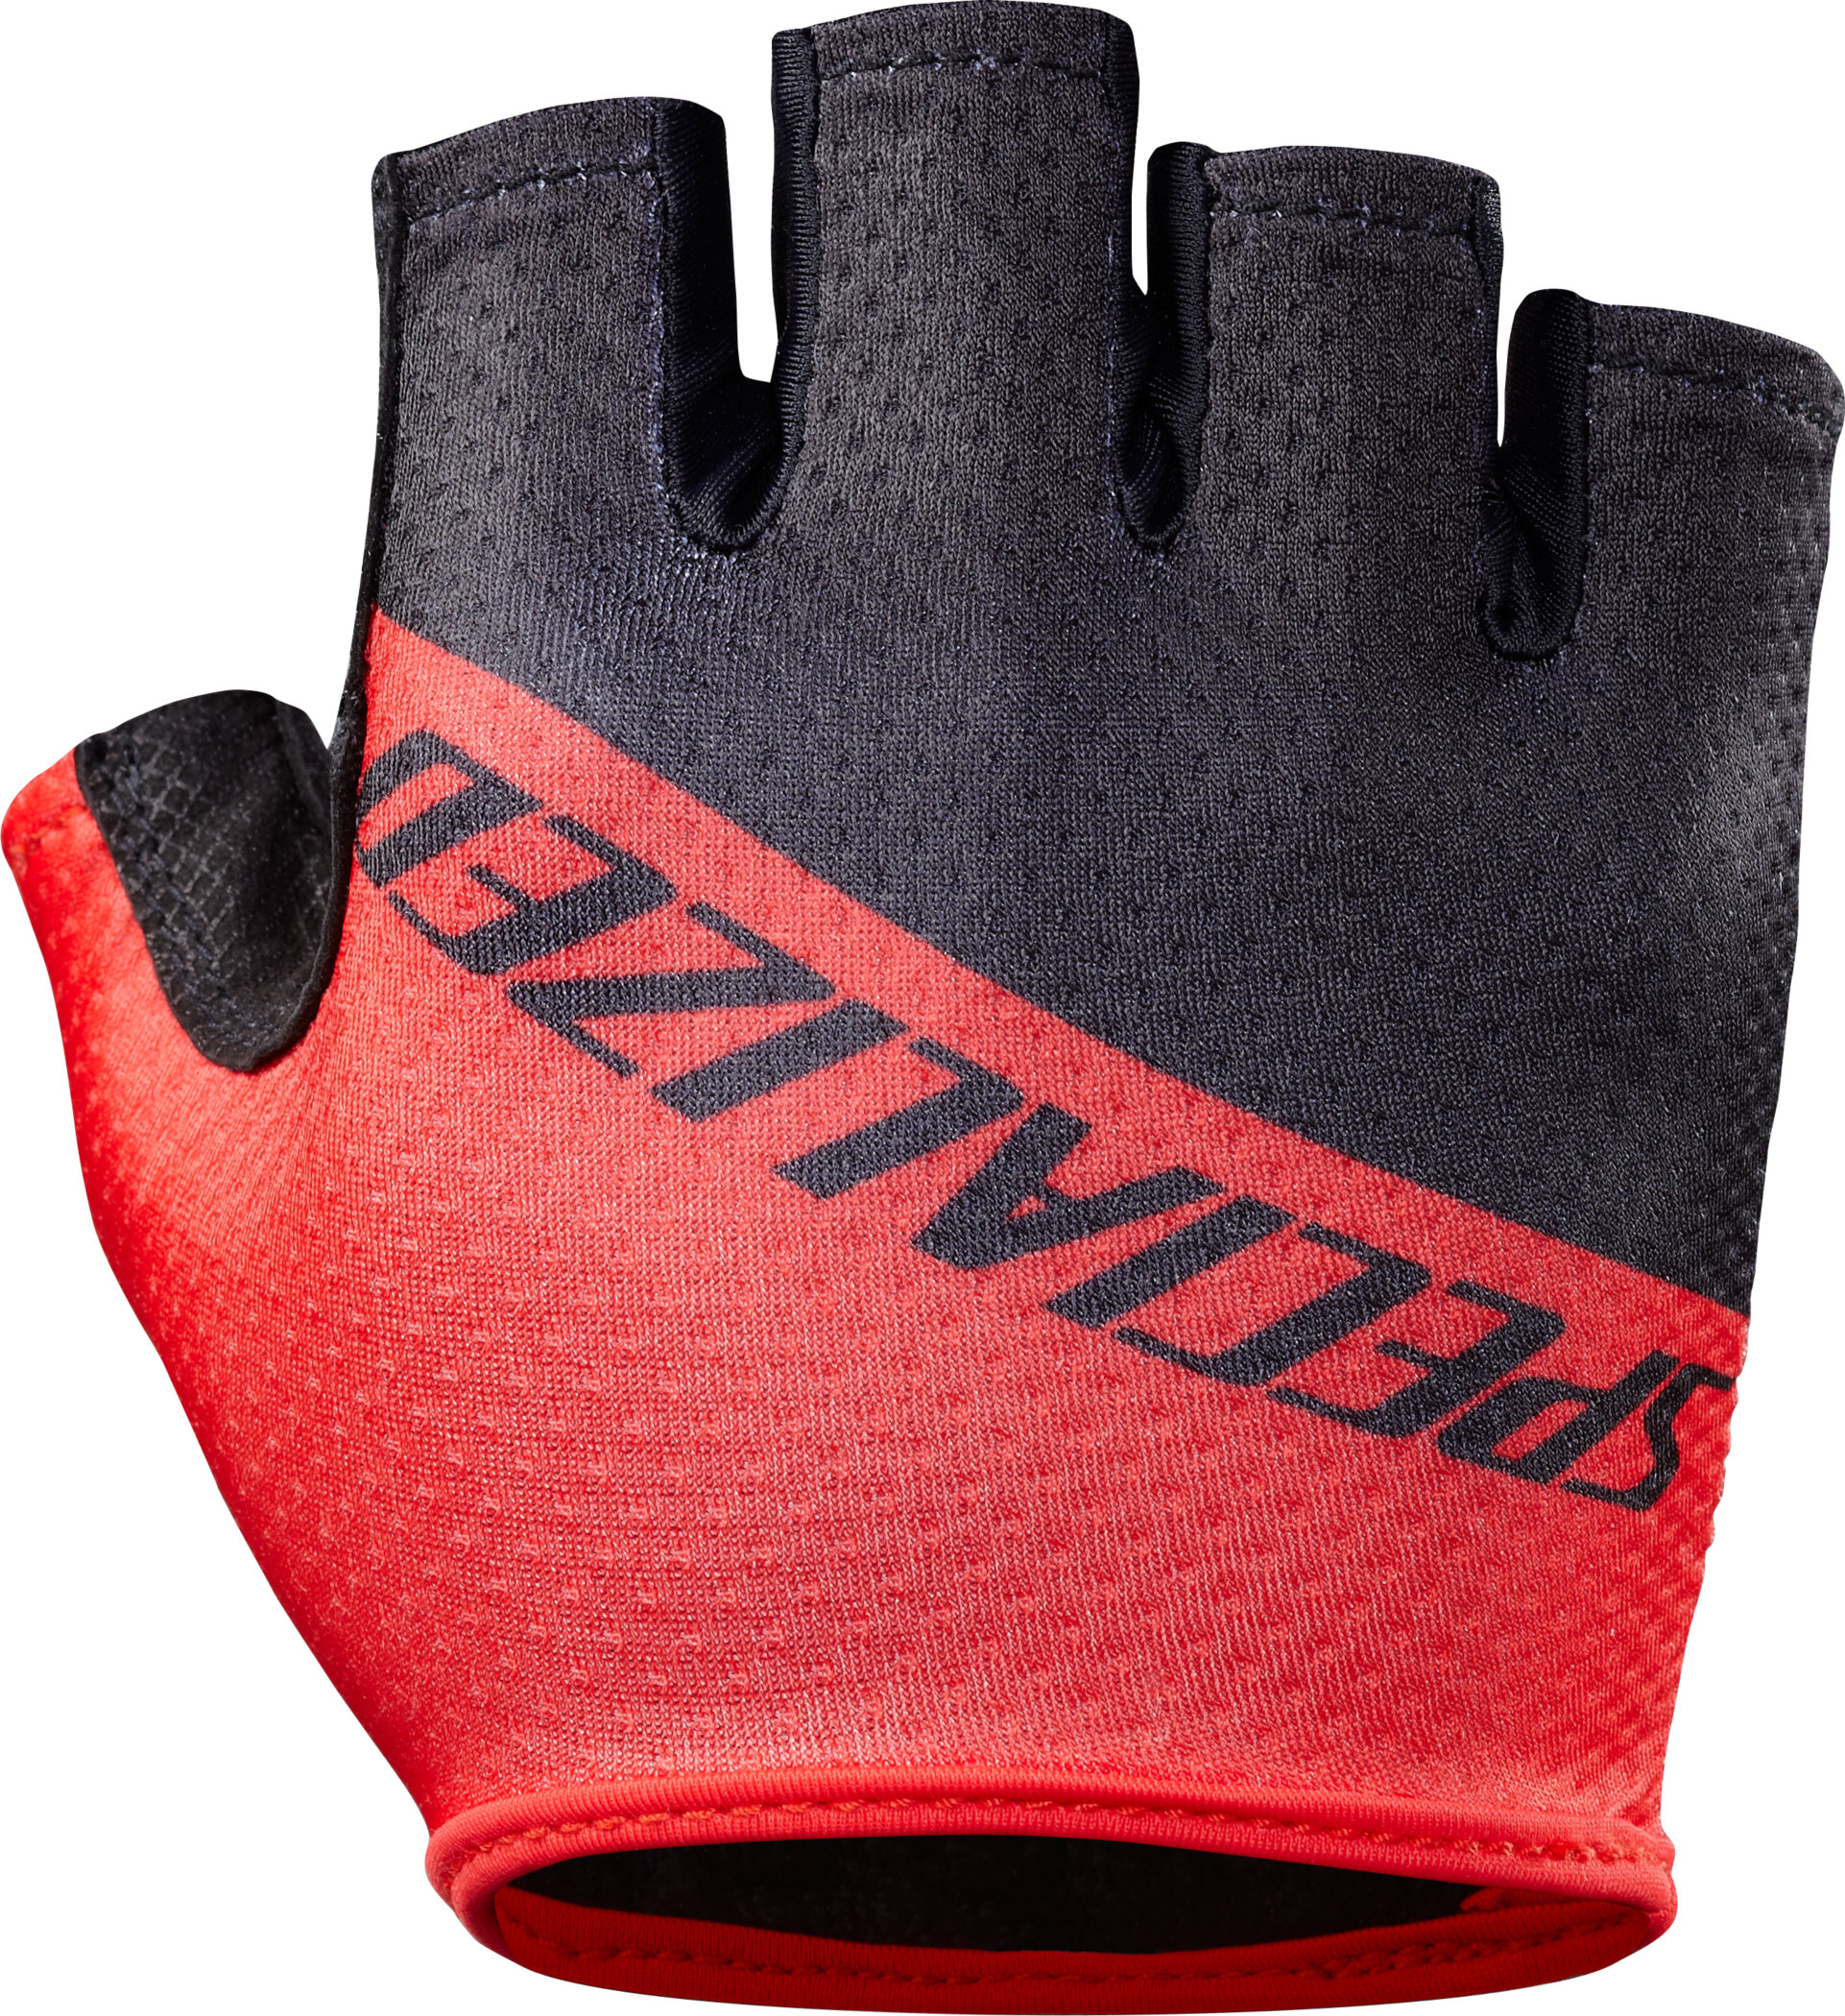 SPECIALIZED SL PRO GLOVE SF RED/BLK TEAM L - Bikedreams & Dustbikes